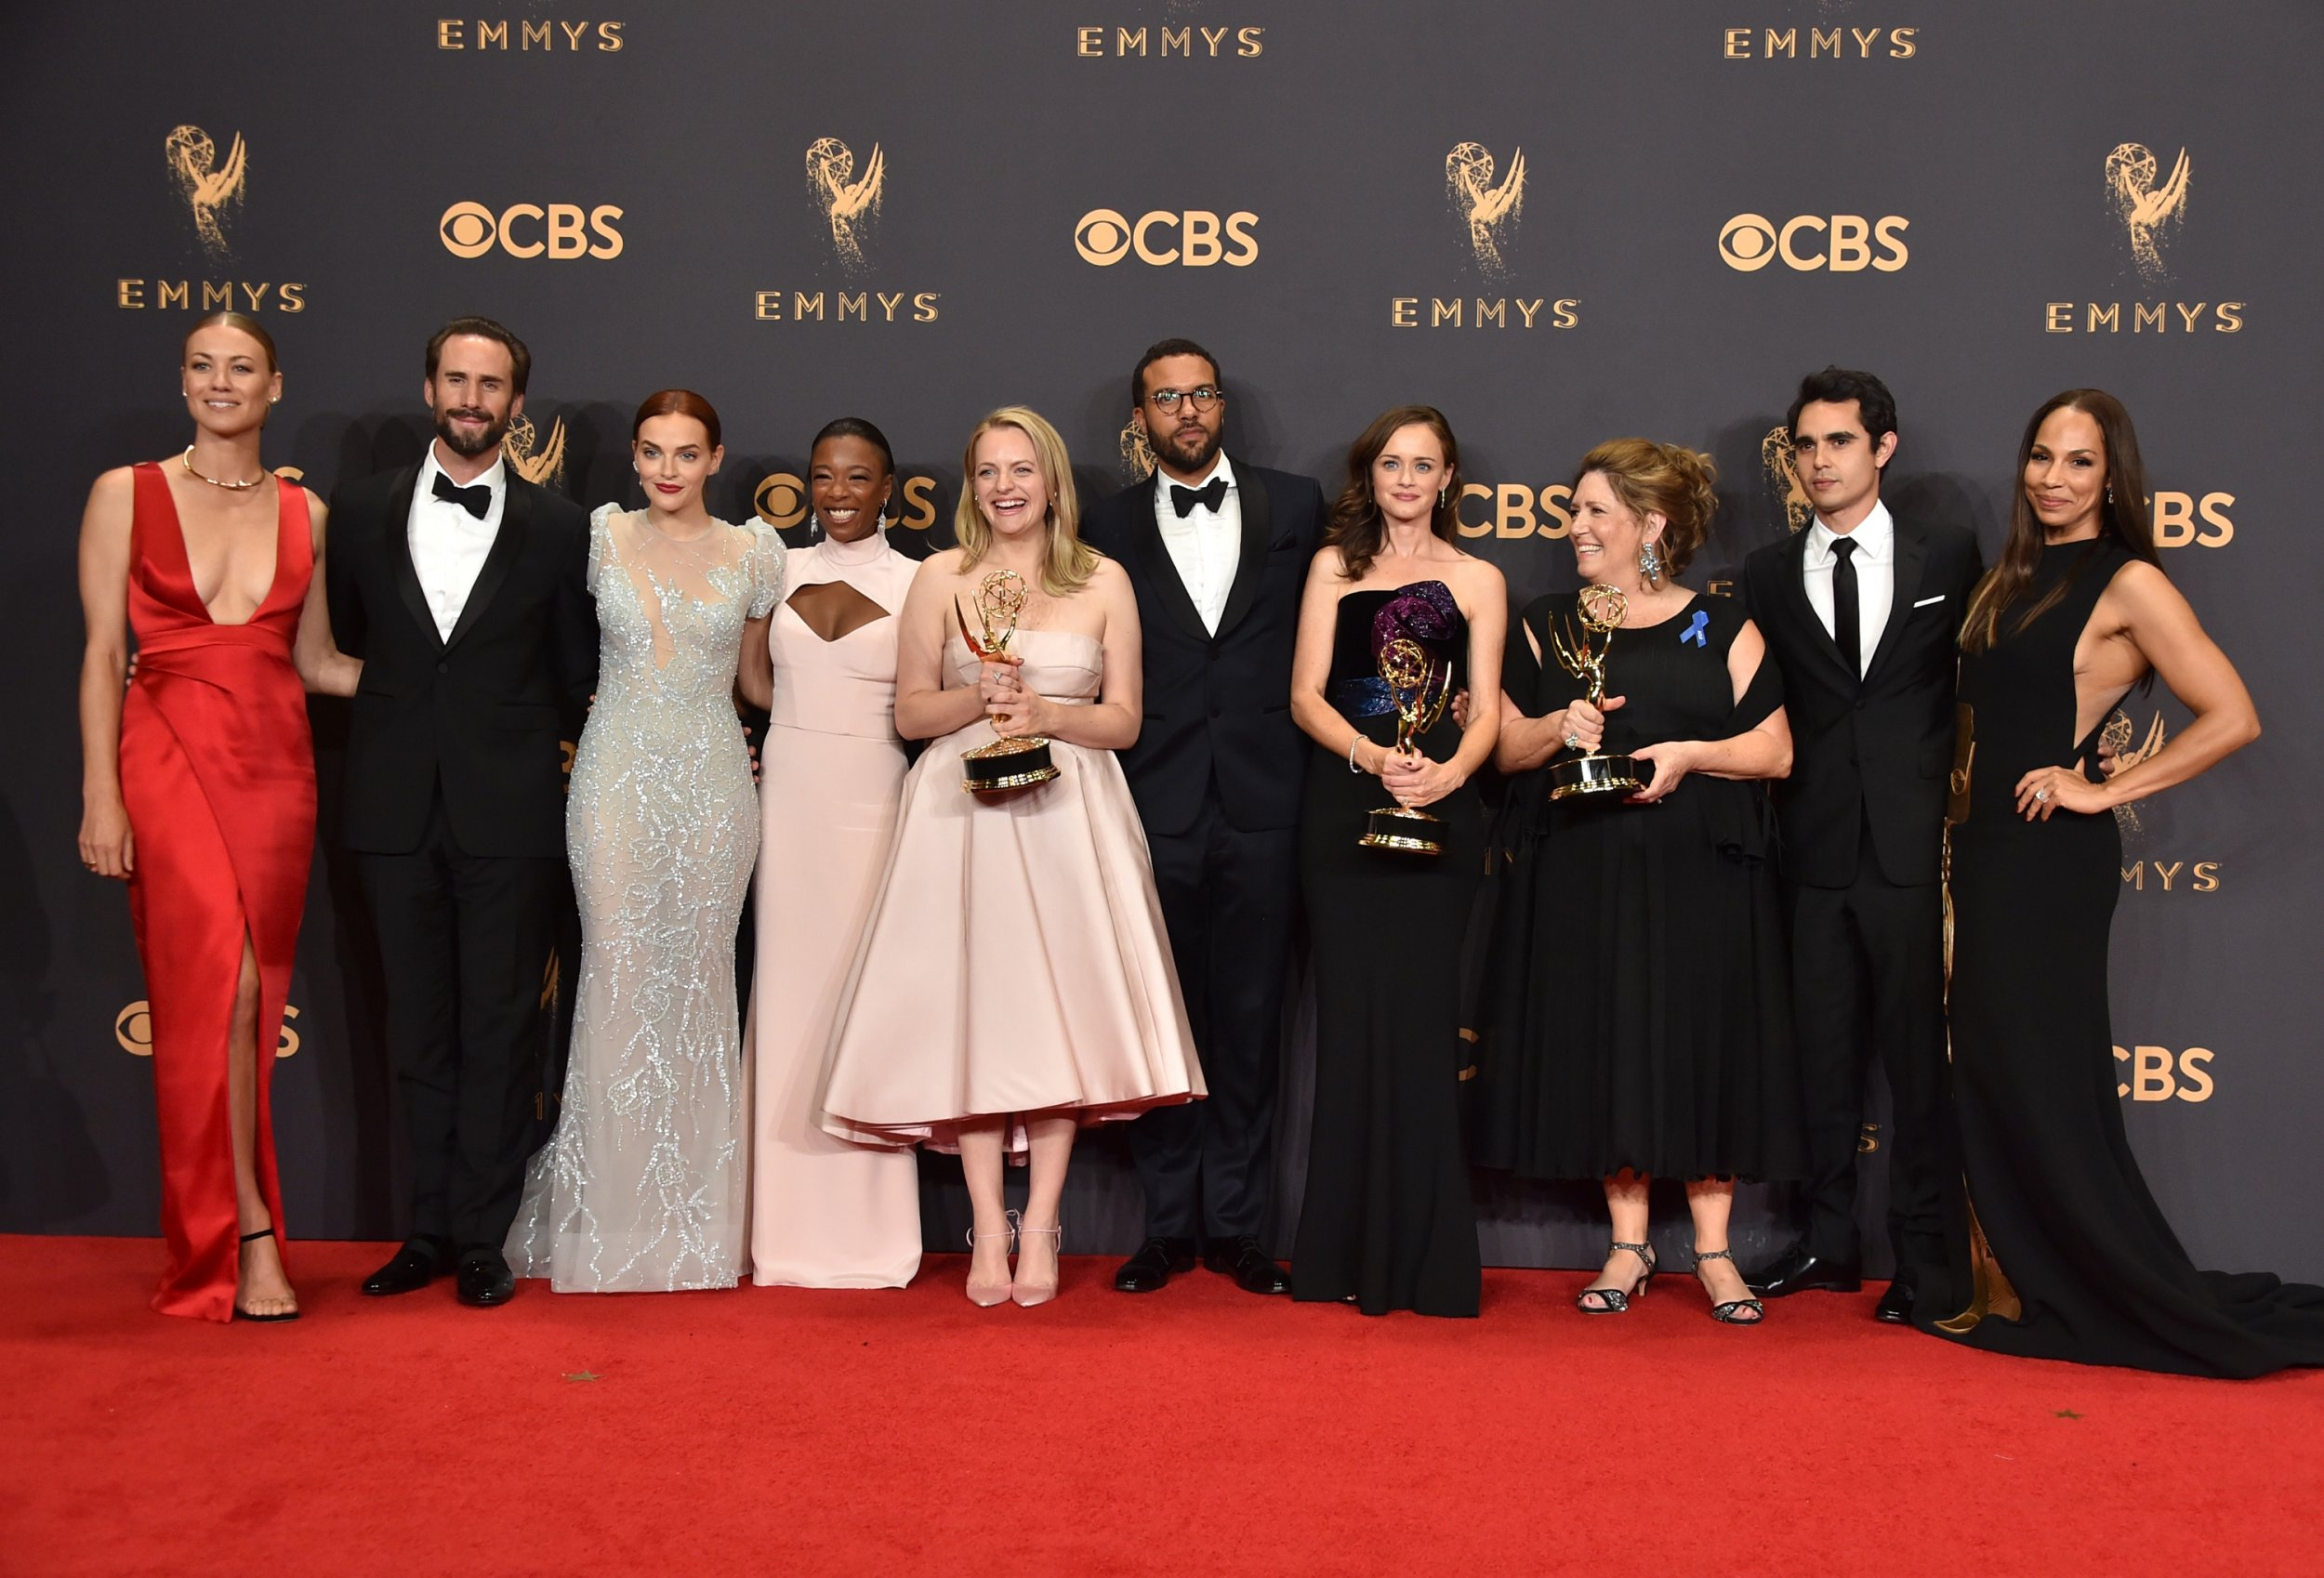 Hd Girl Highlights Wallpaper 2017 Emmys Highlights The Handmaid S Tale Makes History